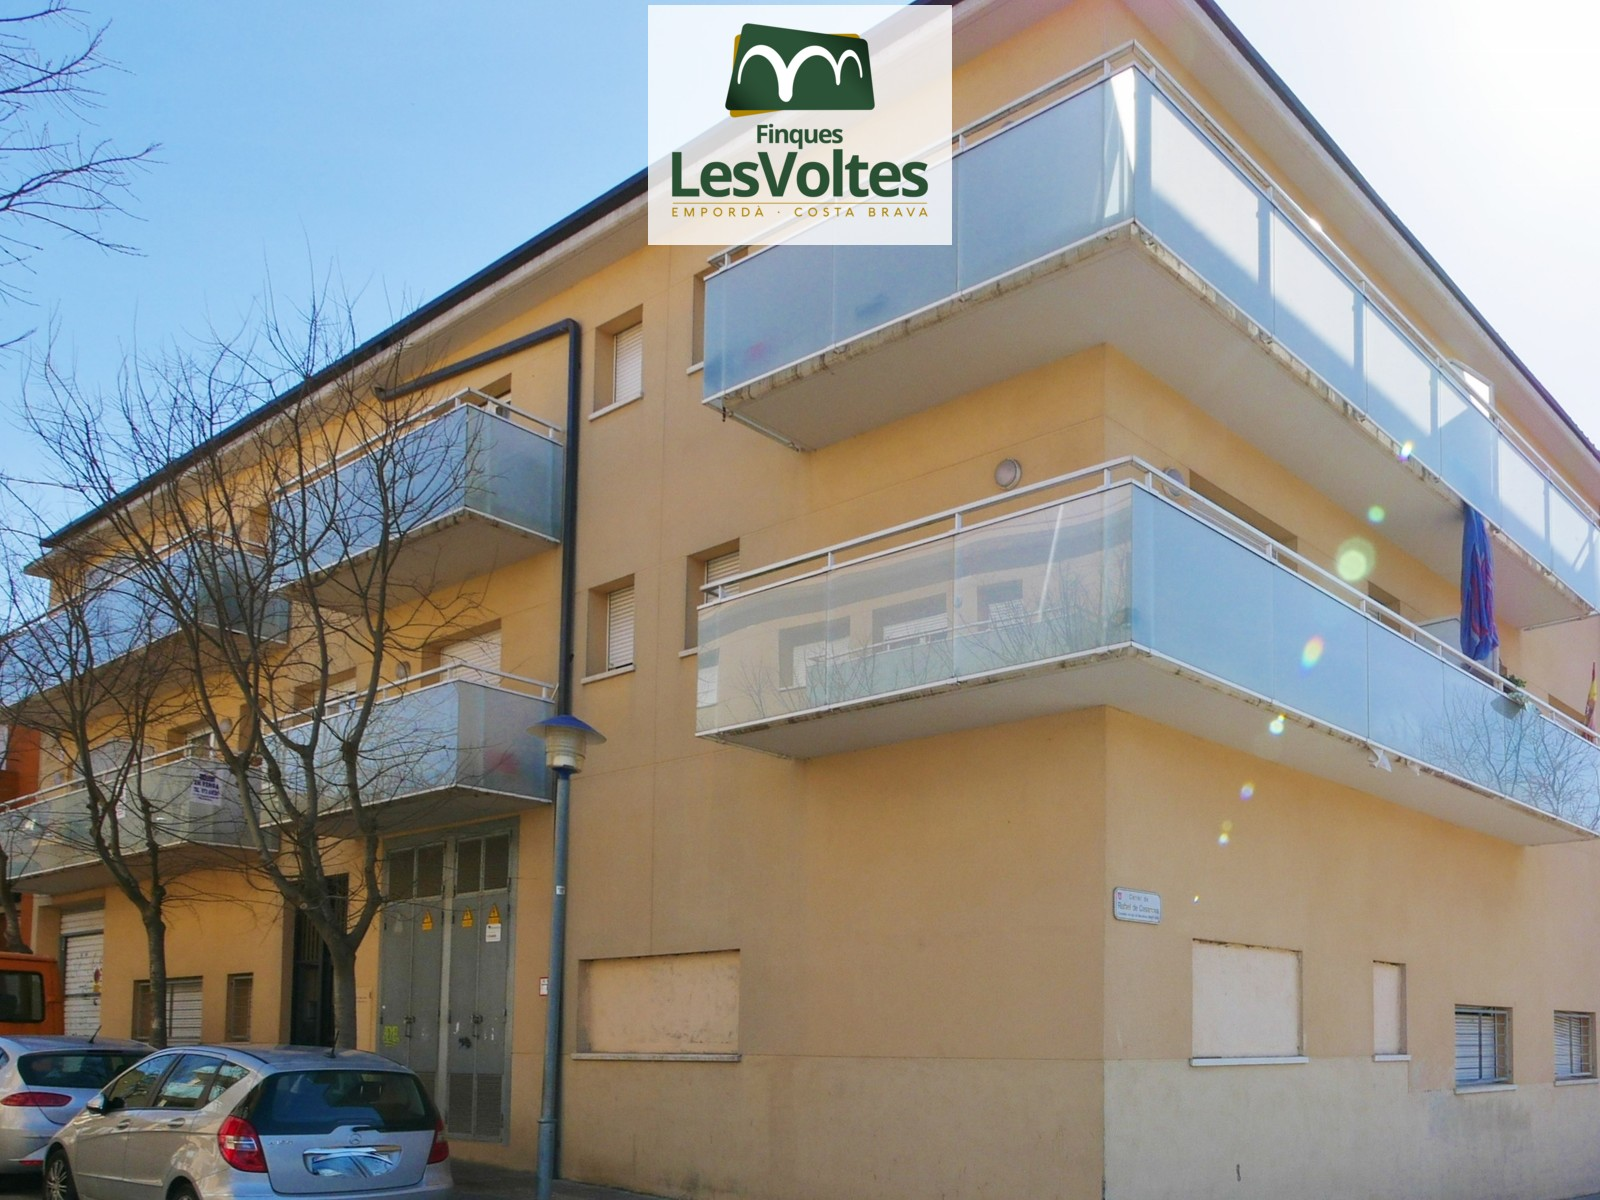 2 bedroom apartment for sale in well connected area of Palafrugell. Small neighborhood community with elevator.